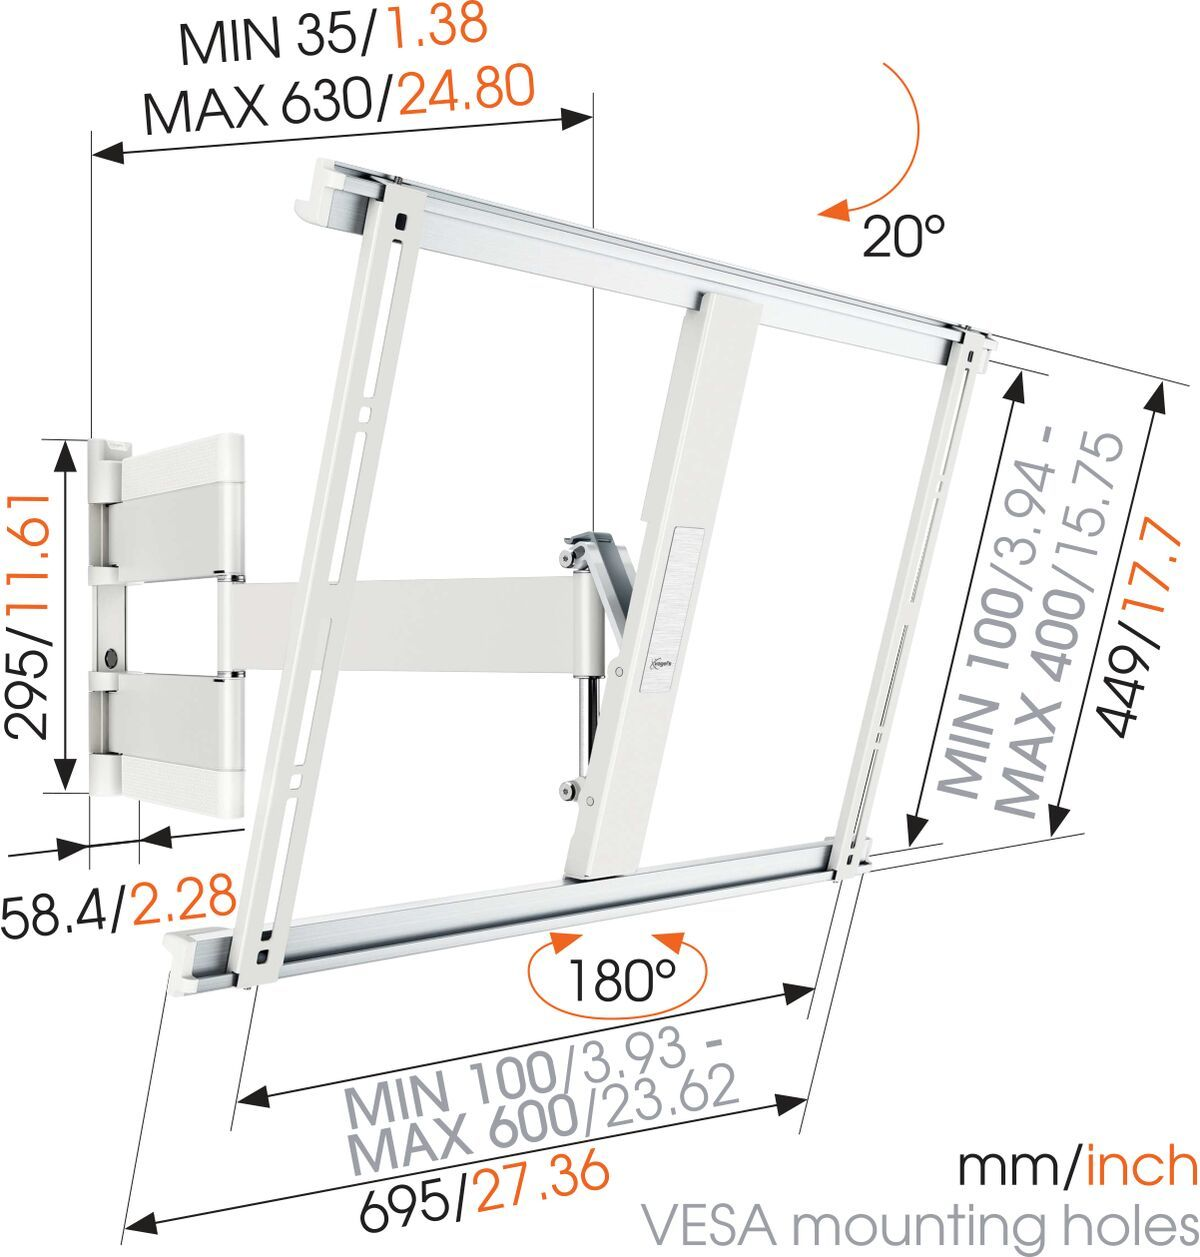 Vogel's THIN 545 ExtraThin Full-Motion TV Wall Mount (white) - Suitable for 40 up to 65 inch TVs - Full motion (up to 180°) - Tilt up to 20° - Dimensions